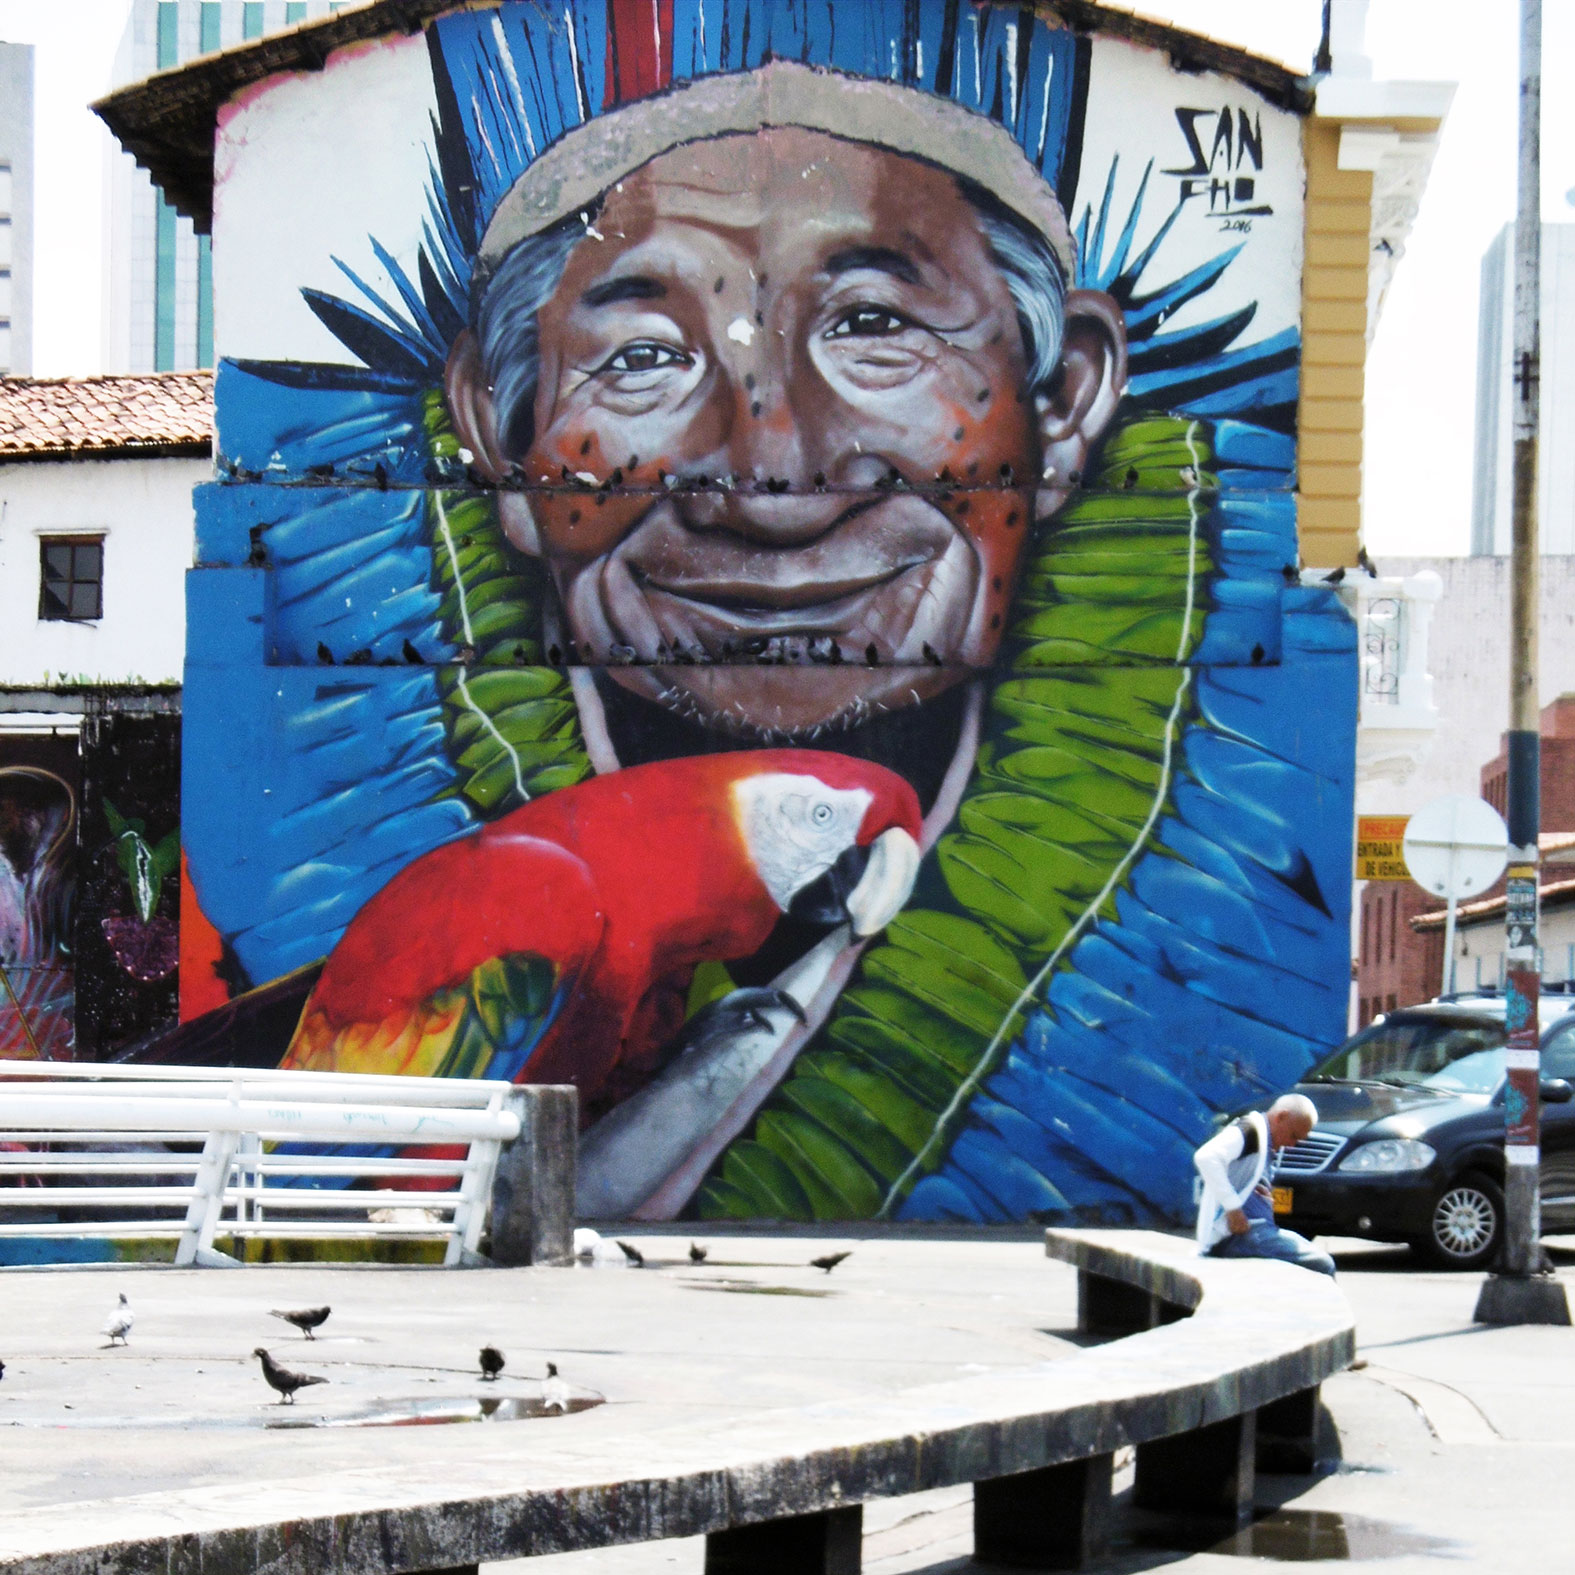 frontier-free-drifting-cali-chief-graffiti-square